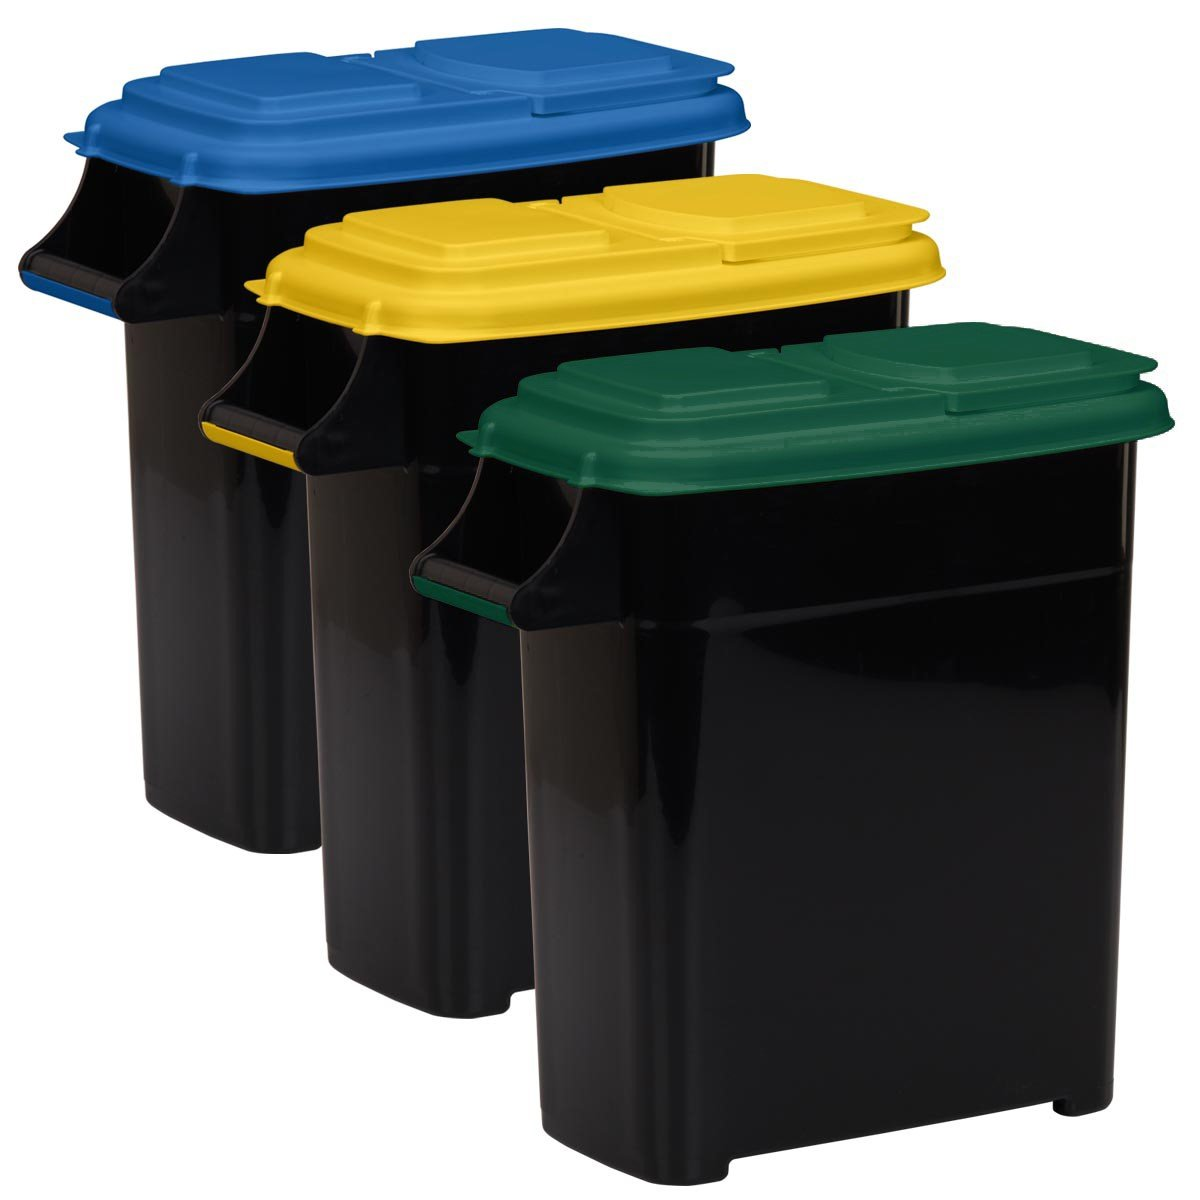 Buddeez Recycling Containers with Color Coded Lids, 4-Gallon/16-Quart, 3-Pack